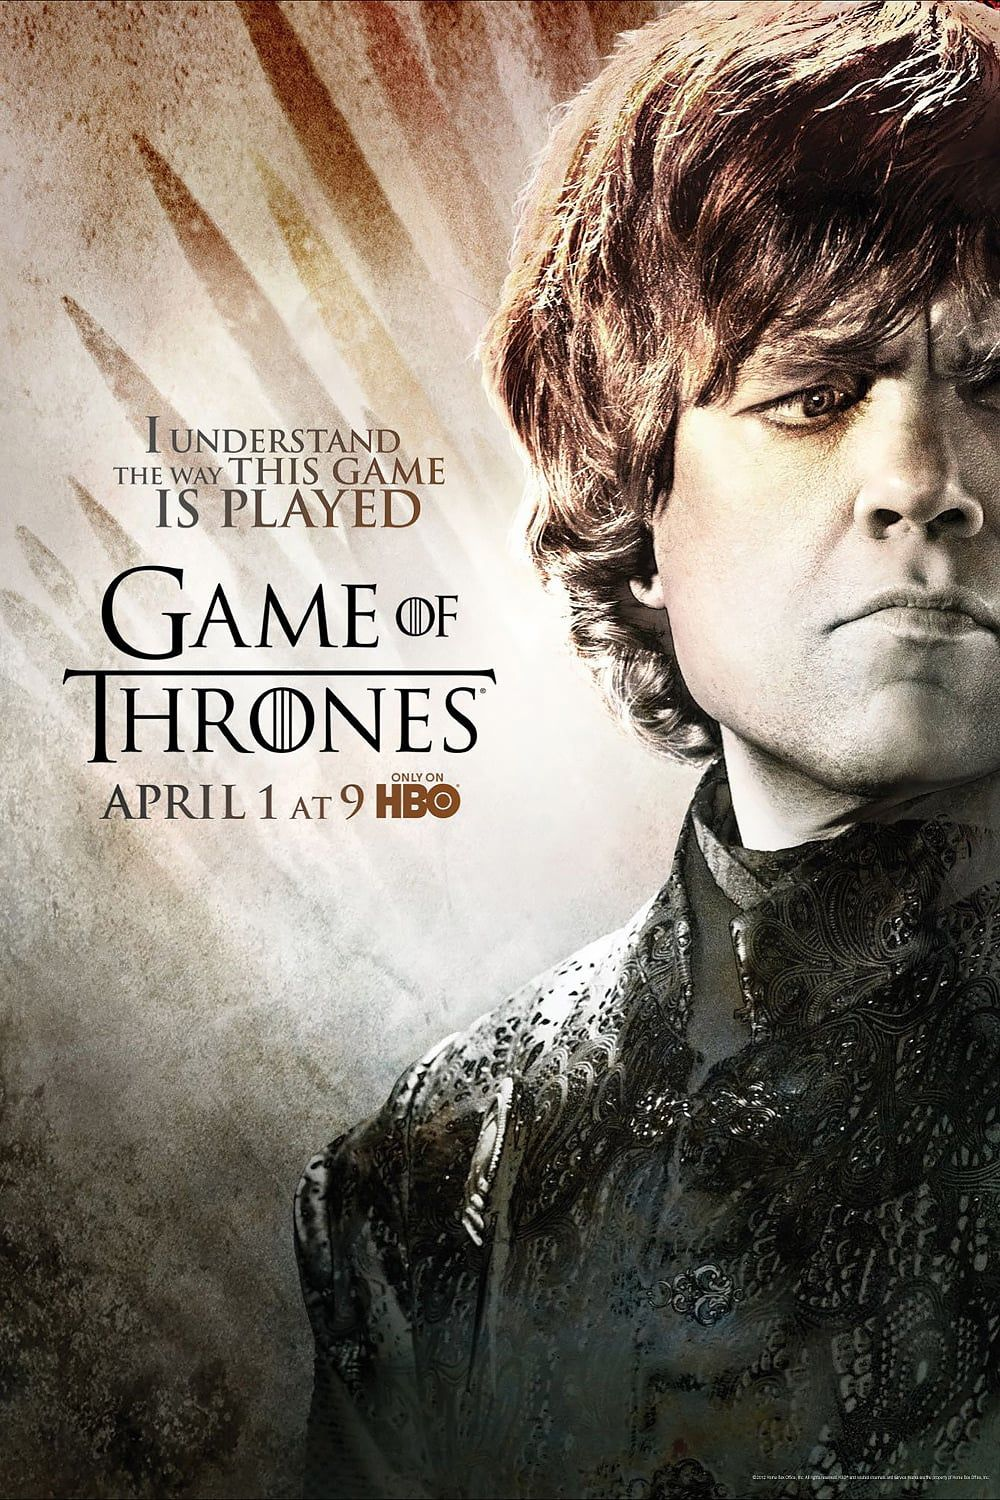 Game Of Thrones Poster High Quality Hd Printable Wallpapers Season Tyrion Juego De Tronos Juego De Tronos Wallpapers Tyron Lannister